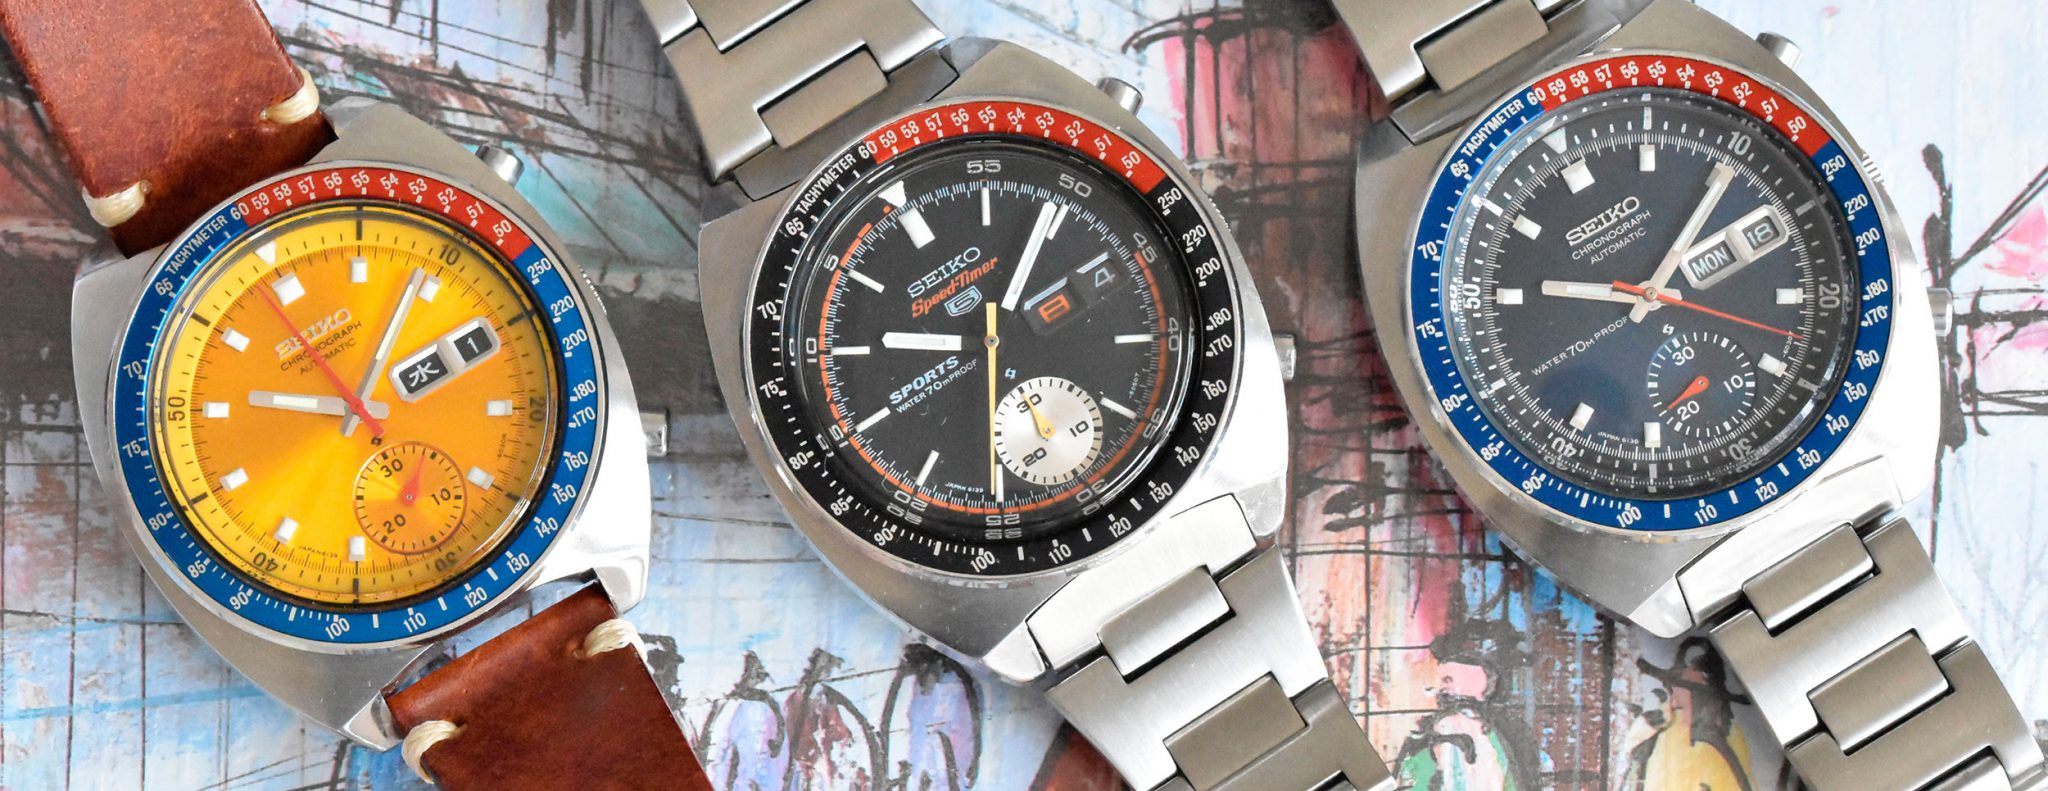 Seiko 6139 chronographs models guide